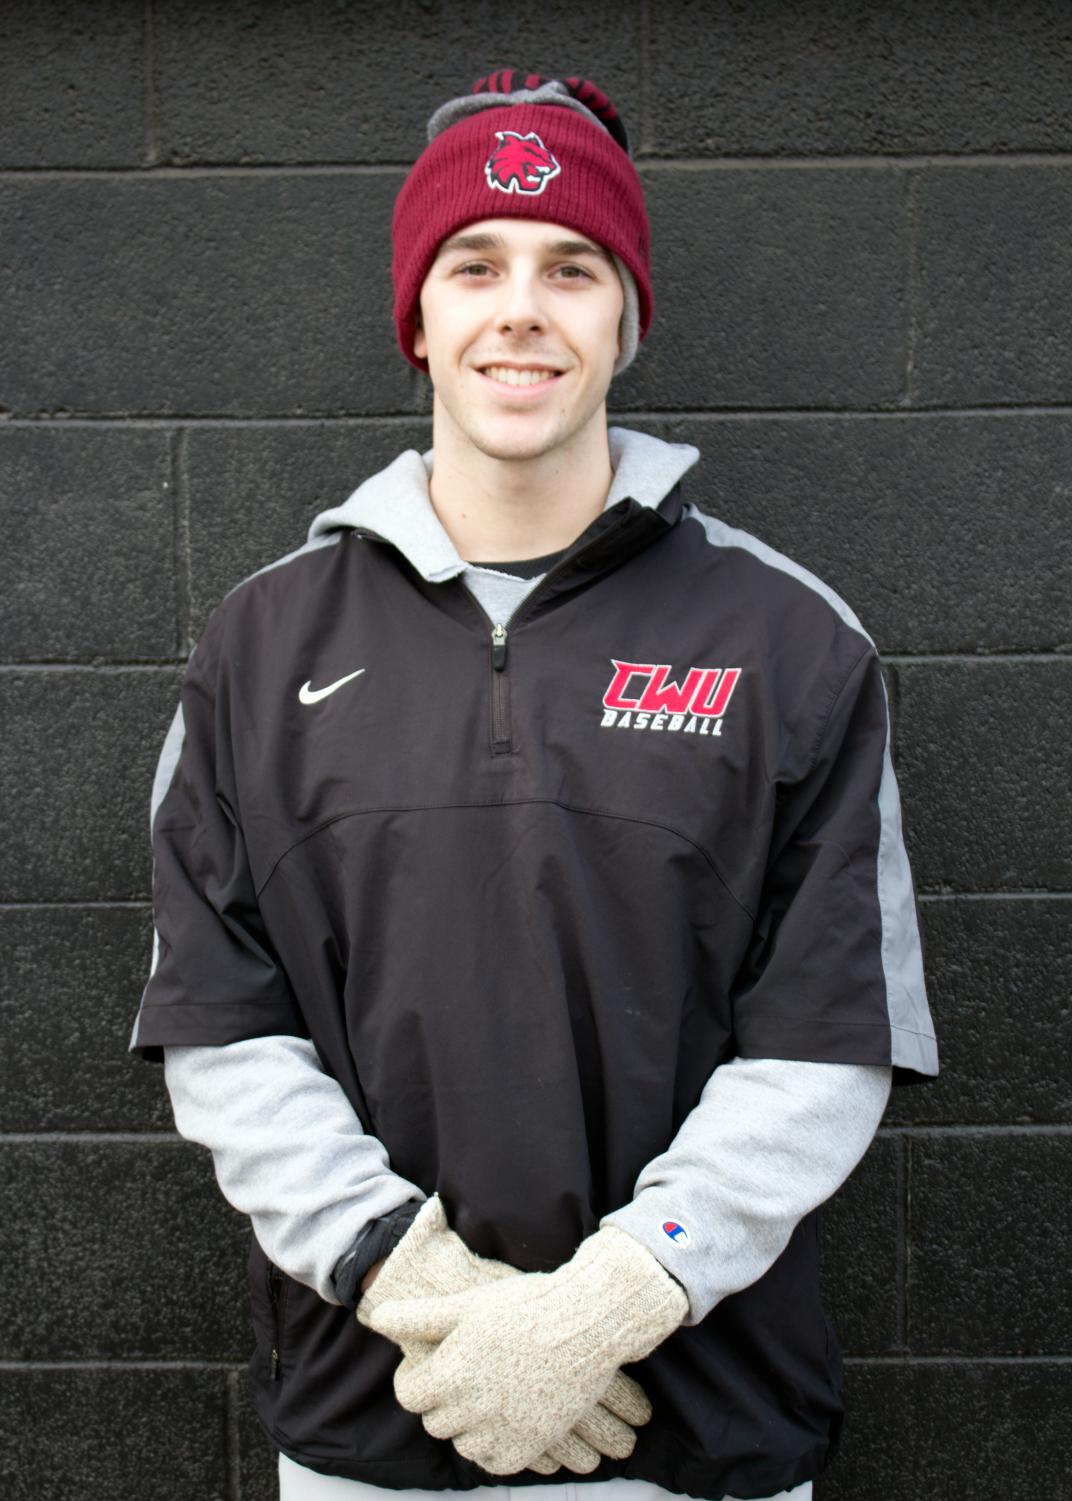 CWU pitcher Tyler Hoefer is just one of the experienced Wildcat pitchers being featured on the roster this season. Hoefer and the Wildcats will look to hit the field for 2019, with their opener set for Feb. 8.